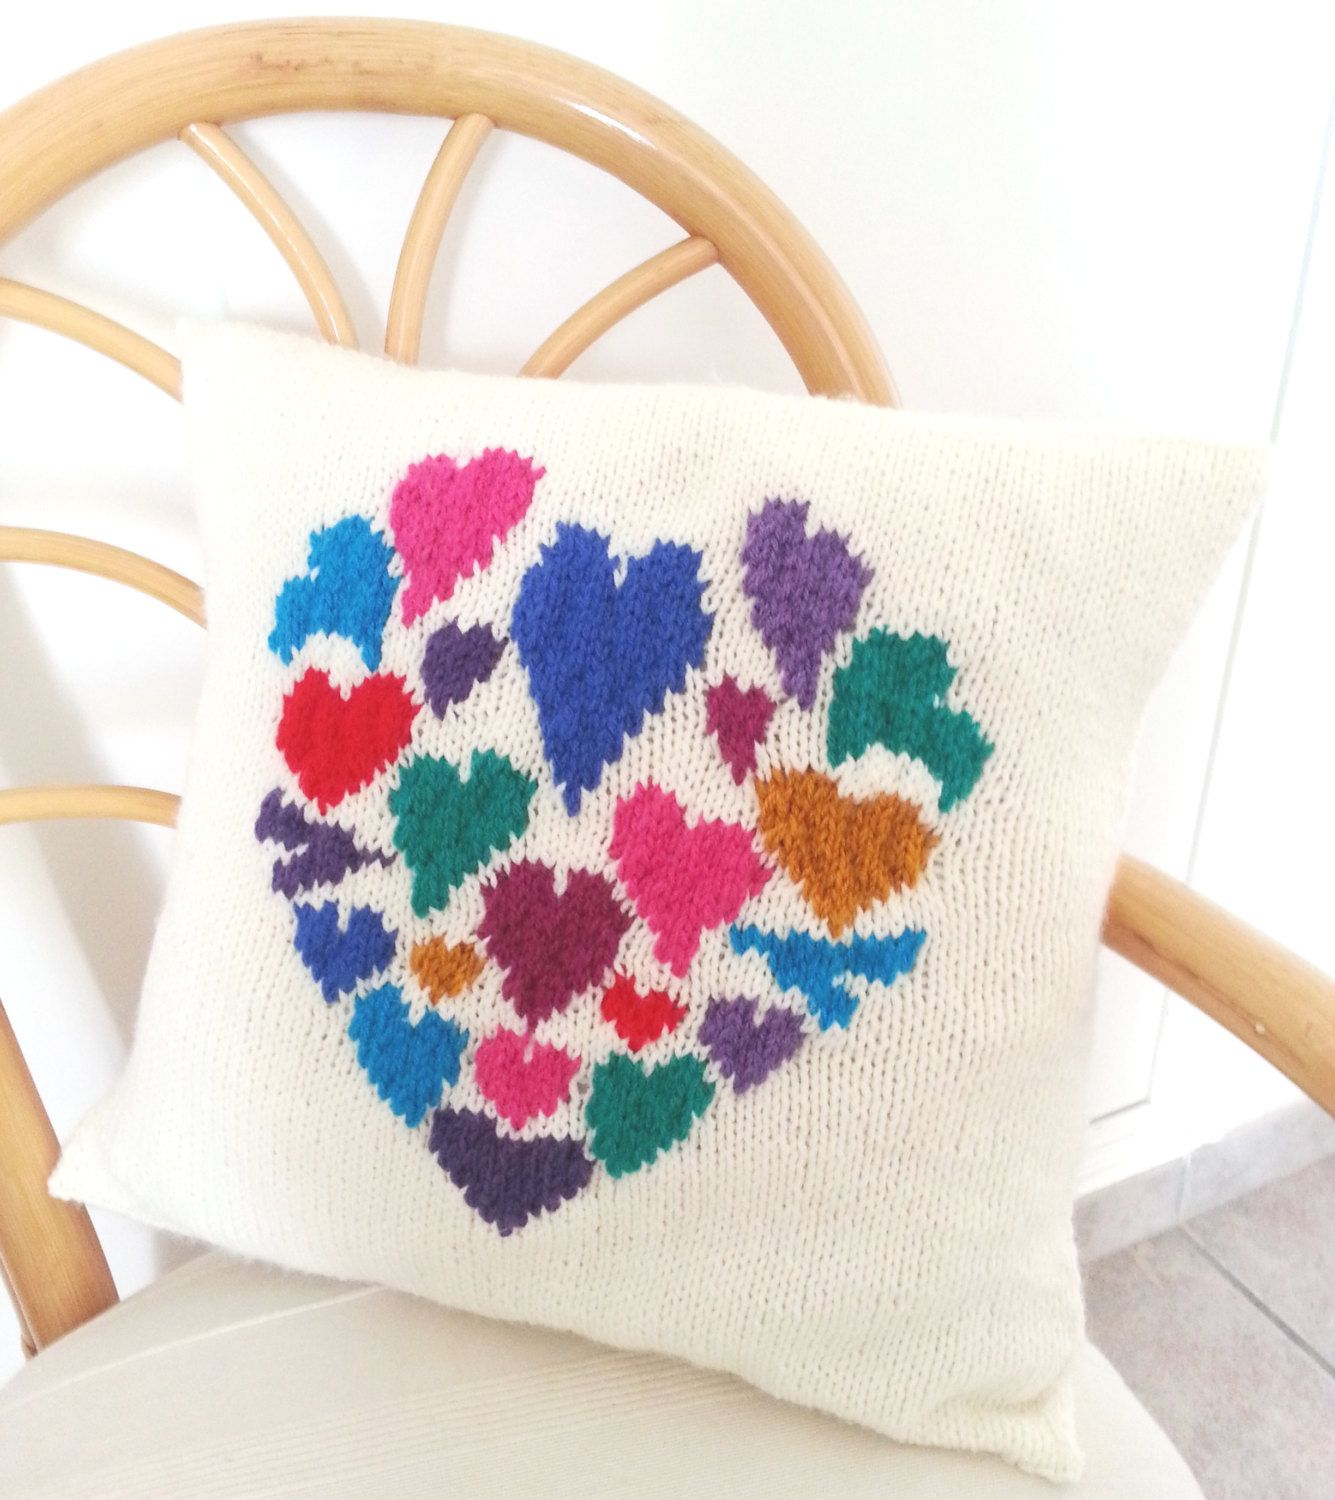 Knitting pattern for hearts within a heart pillow measurements 40 knitting pattern for hearts within a heart pillow measurements 40 cm x 40 cm 16in bankloansurffo Gallery